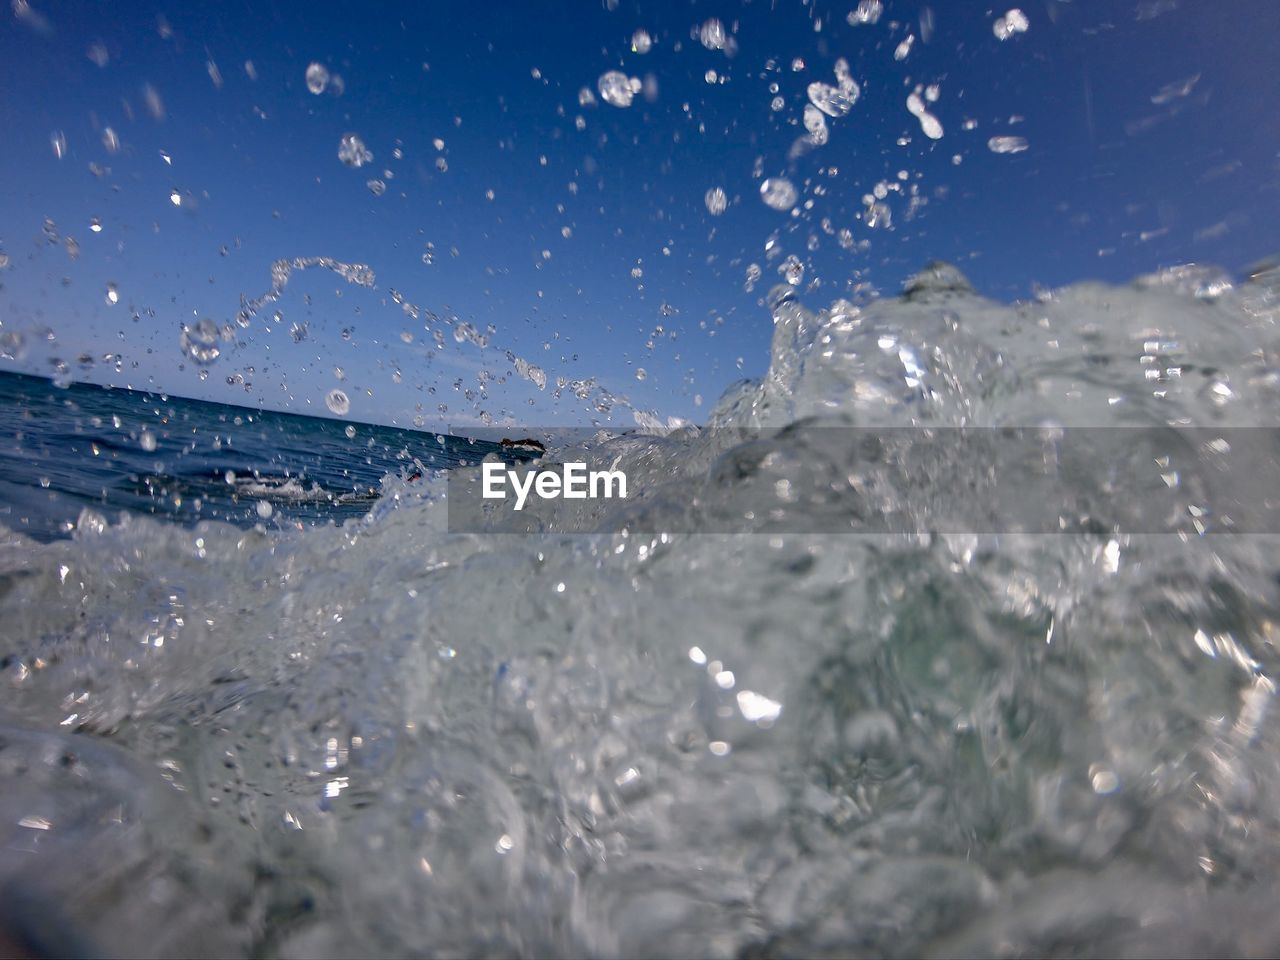 water, motion, splashing, sea, waterfront, nature, day, outdoors, sky, beauty in nature, drop, no people, wave, sport, close-up, blue, aquatic sport, sunlight, scenics - nature, purity